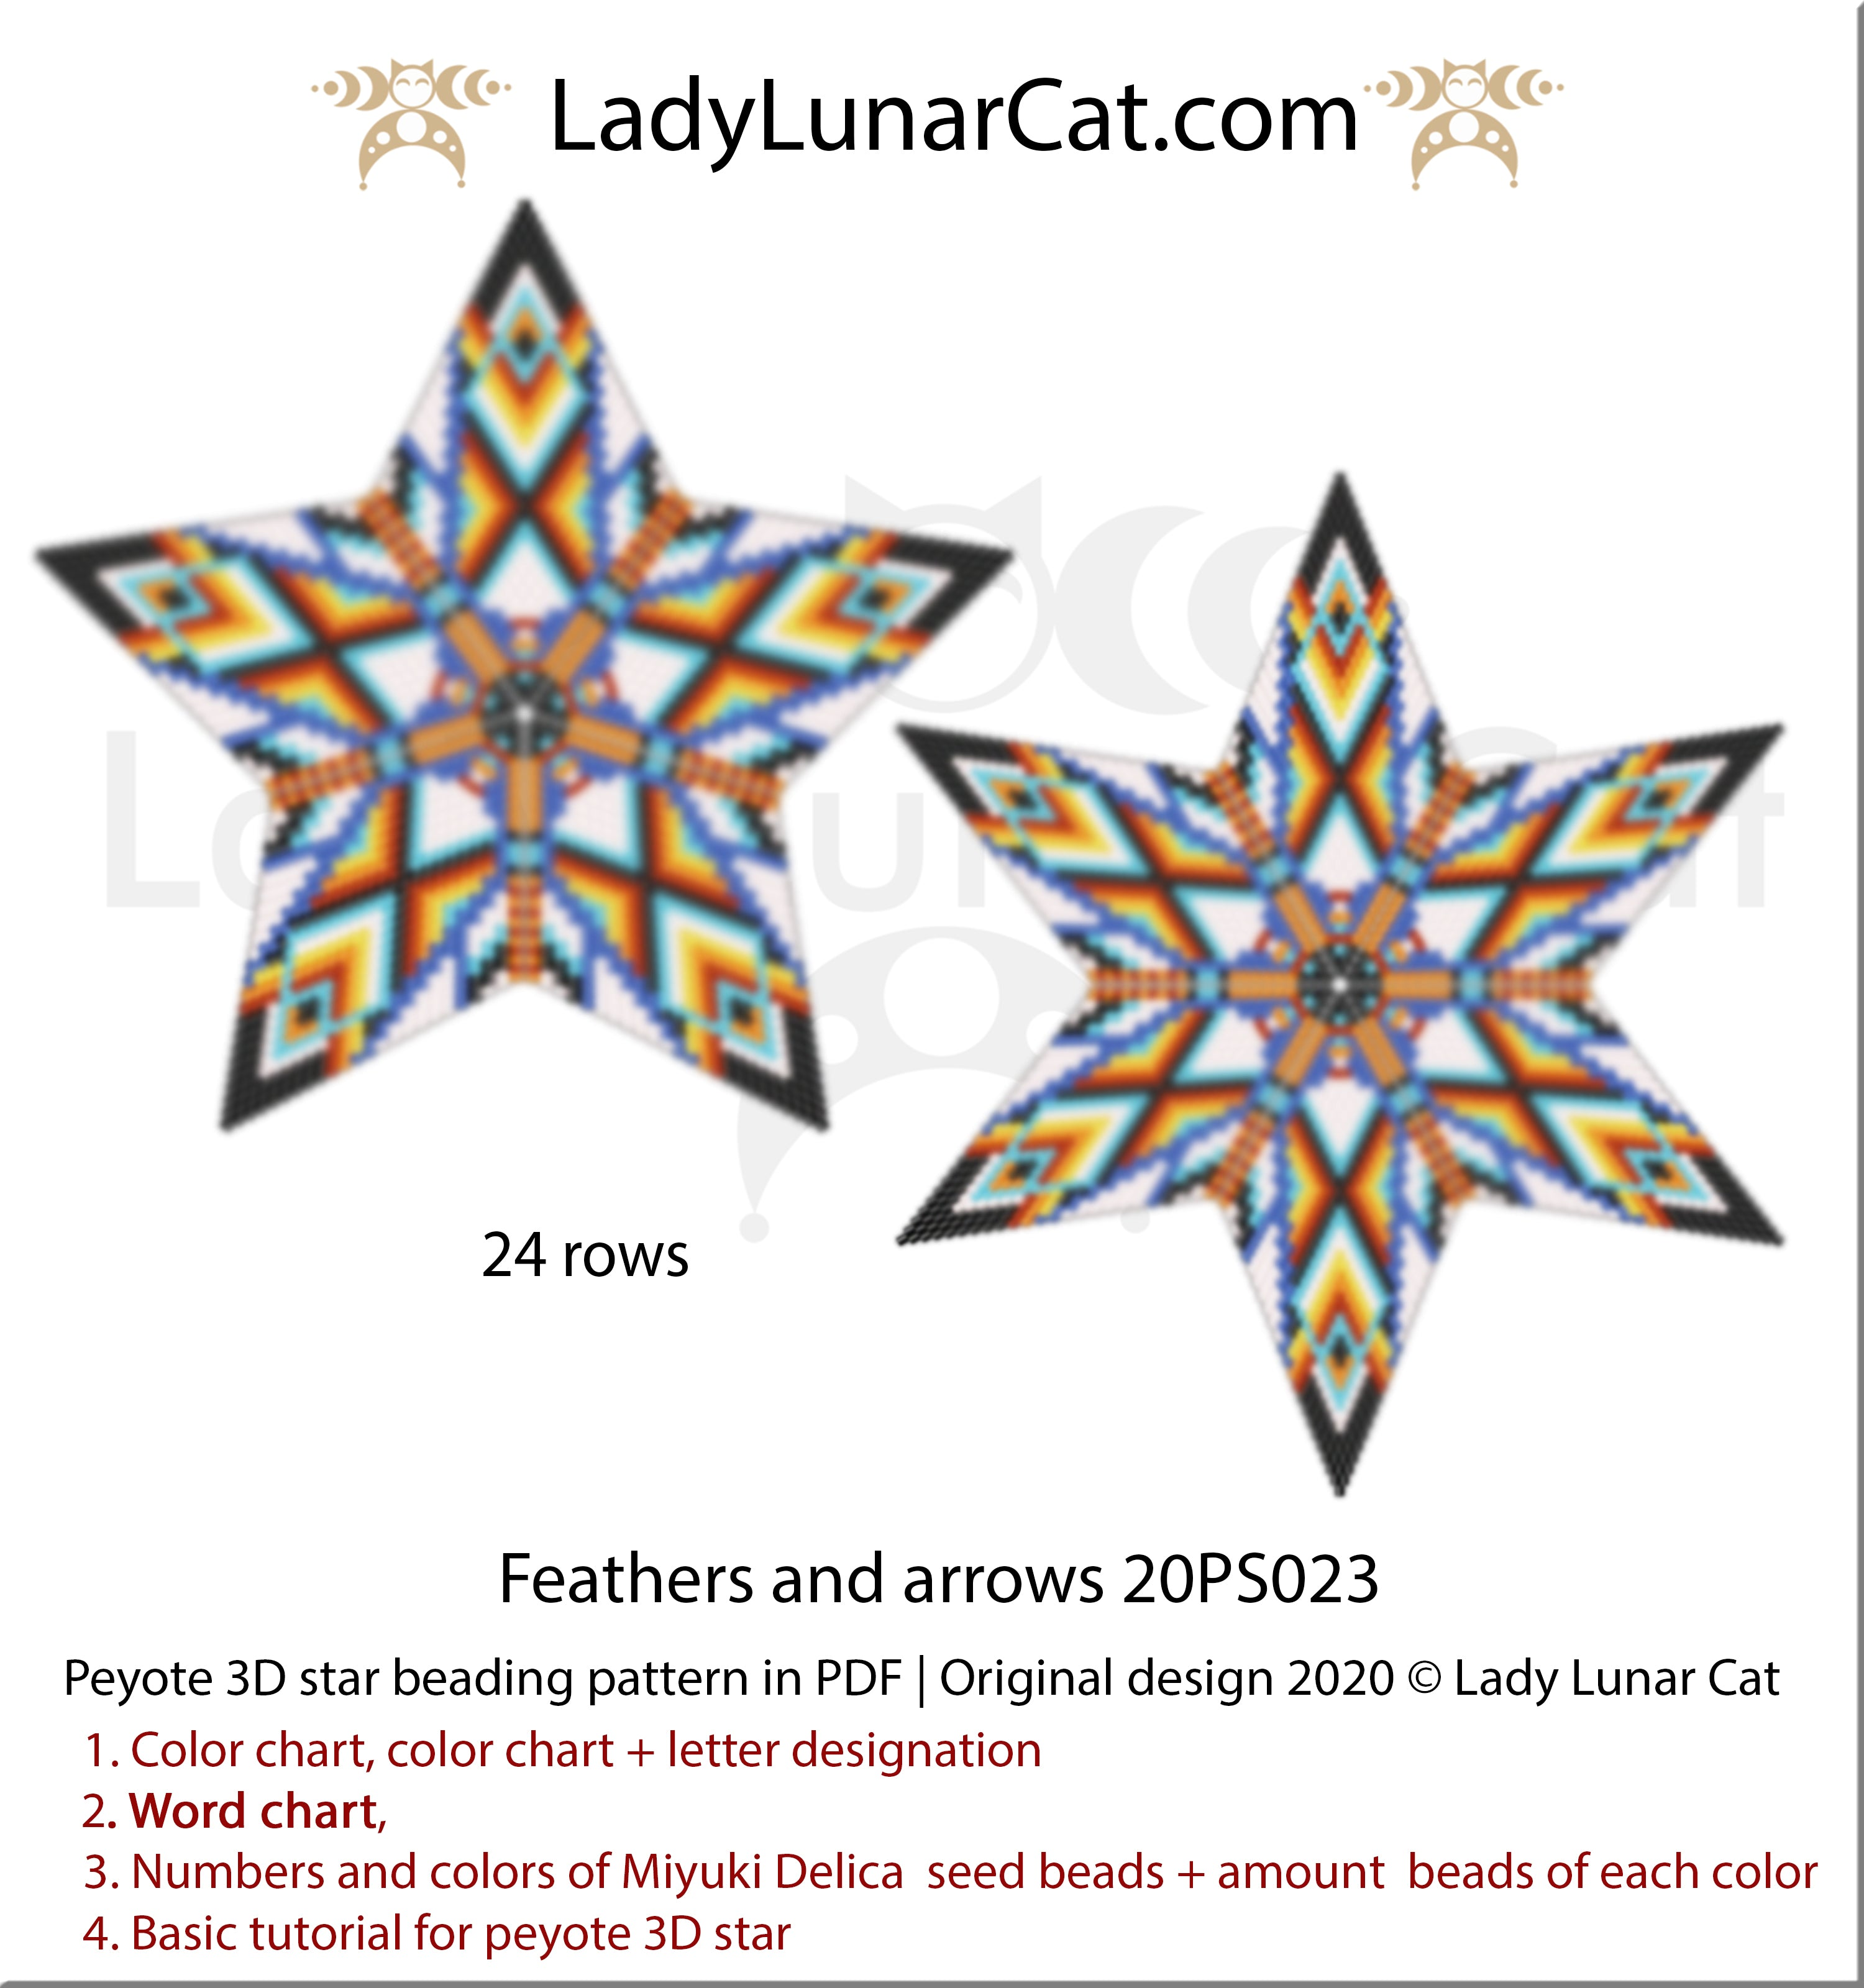 3d peyote star patterns for beading Feathers and arrows by Lady Lunar Cat | Seed beads tutorial for 3D beaded star